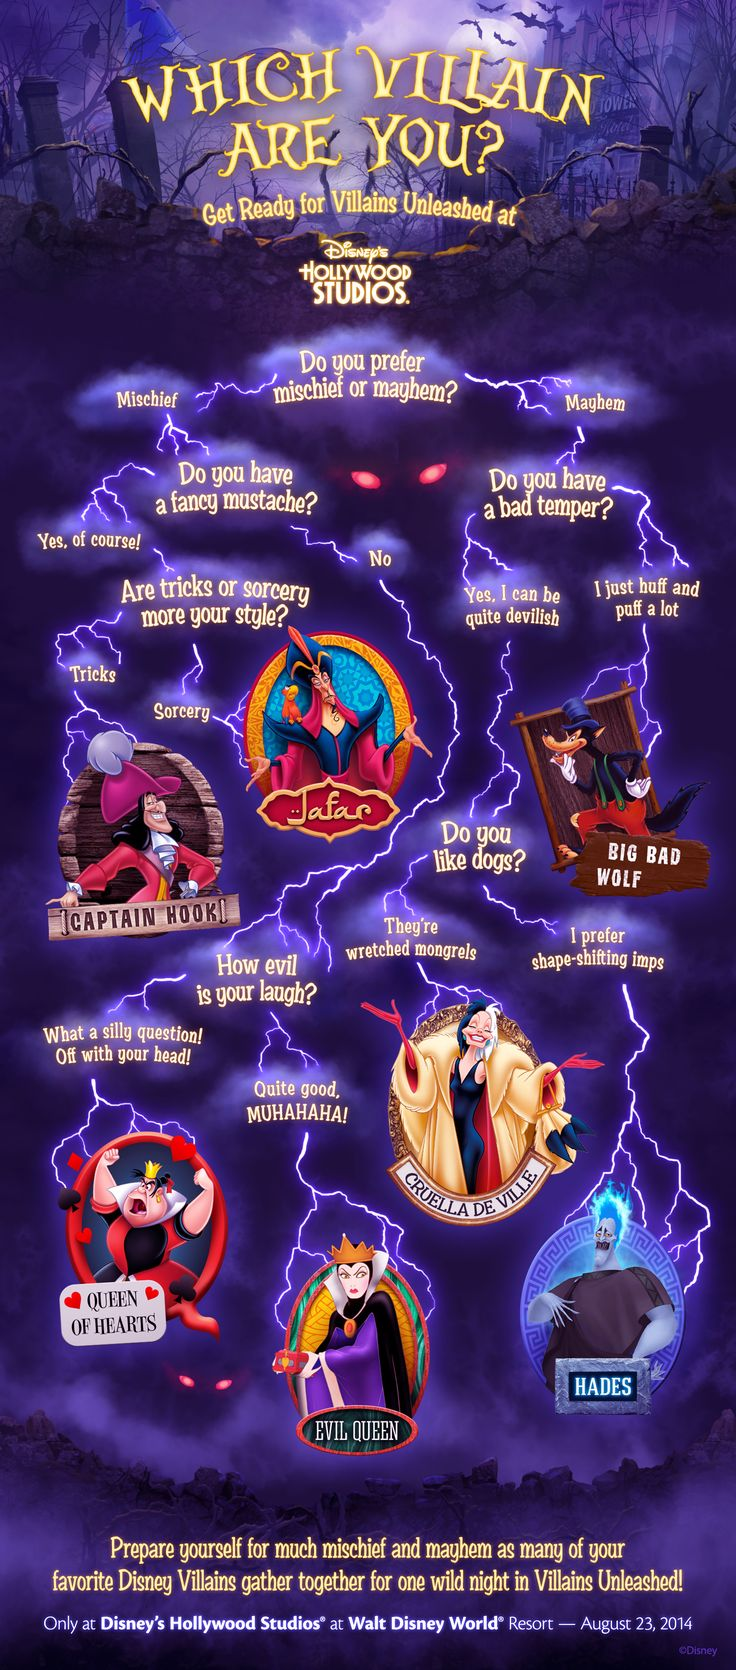 Which Disney Villain are you? Click to learn how you can meet over 50 Disney Villains at Villains Unleashed at Disney's Hollywood Studios!